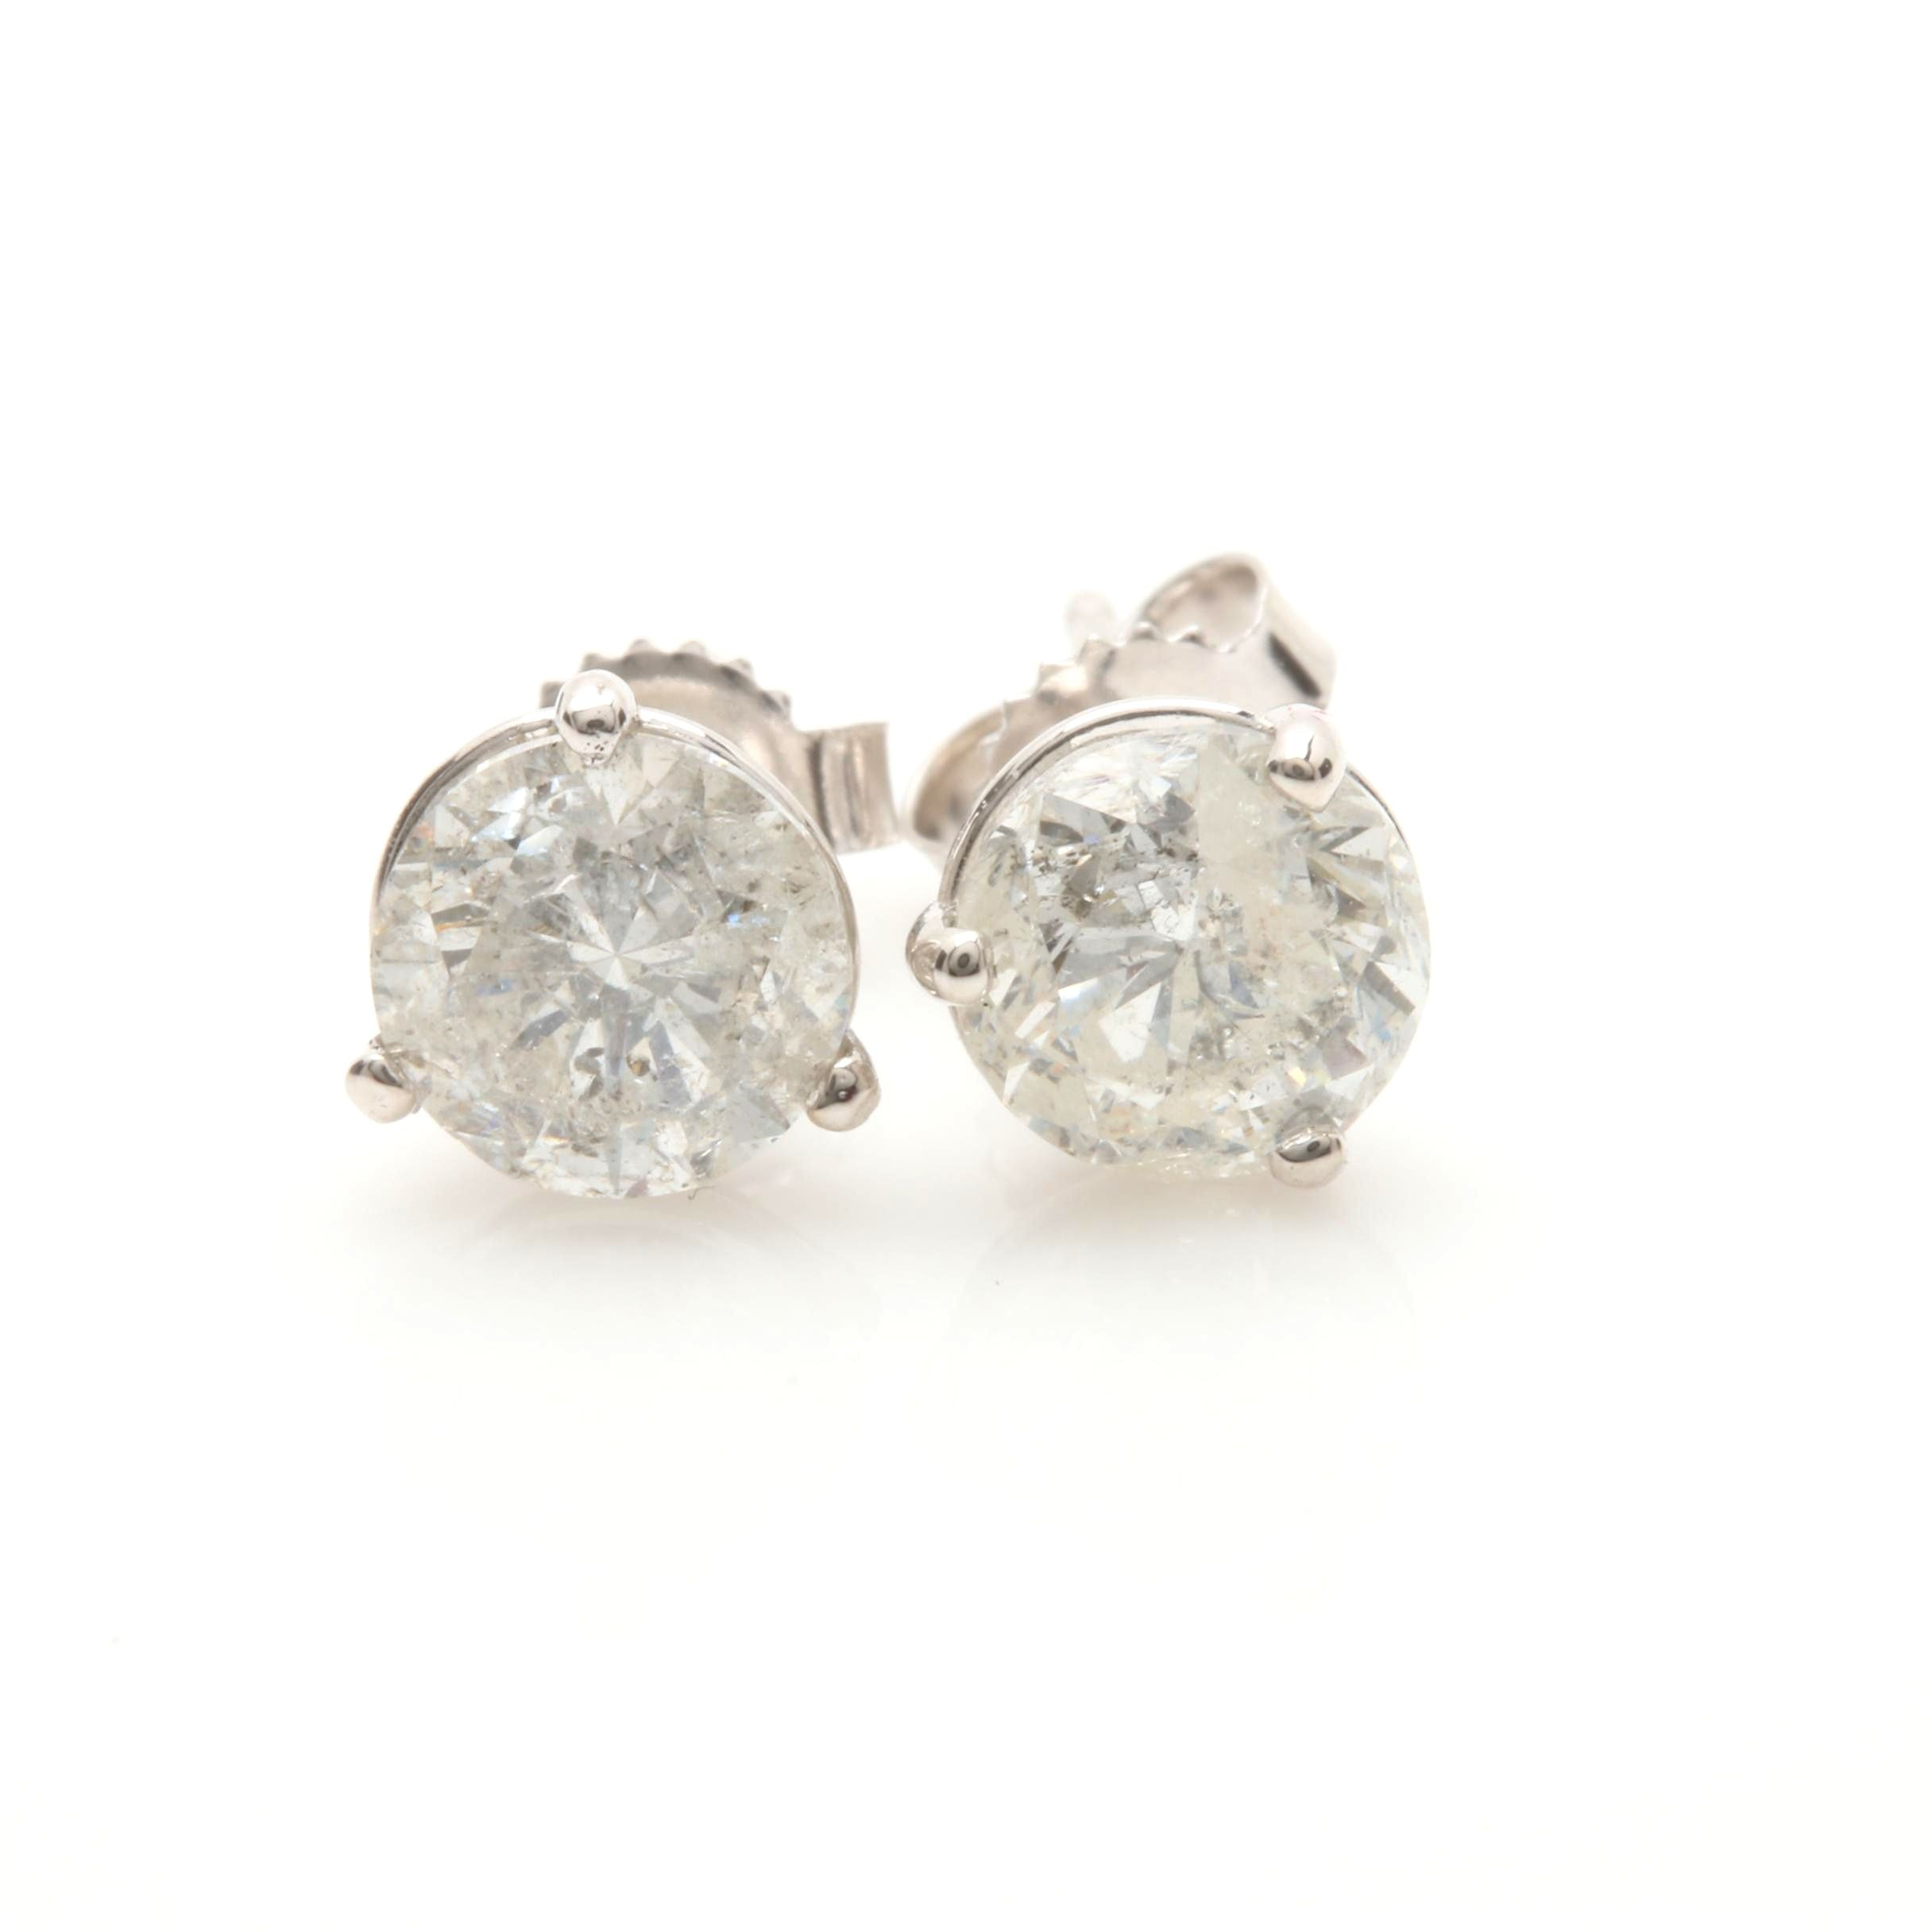 14K White Gold 1.72 CTW Diamond Stud Earrings